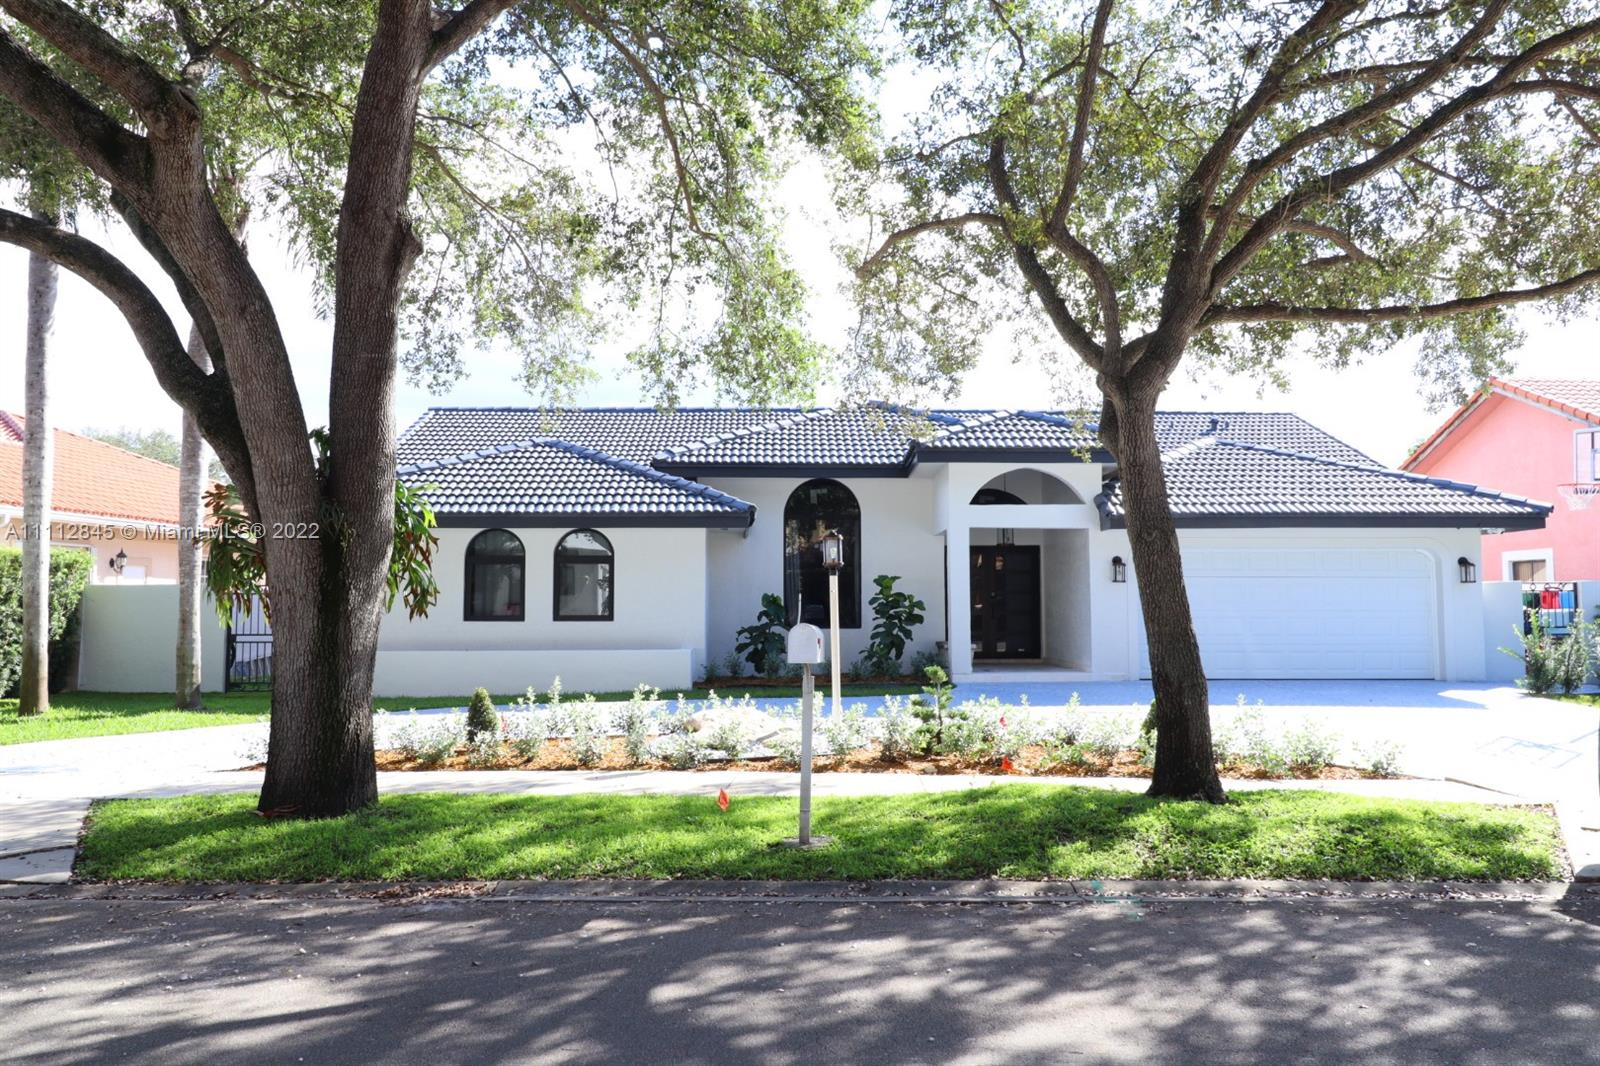 Single Family Home,For Sale,8012 NW 164th Ter, Miami Lakes, Florida 33016,Brickell,realty,broker,condos near me